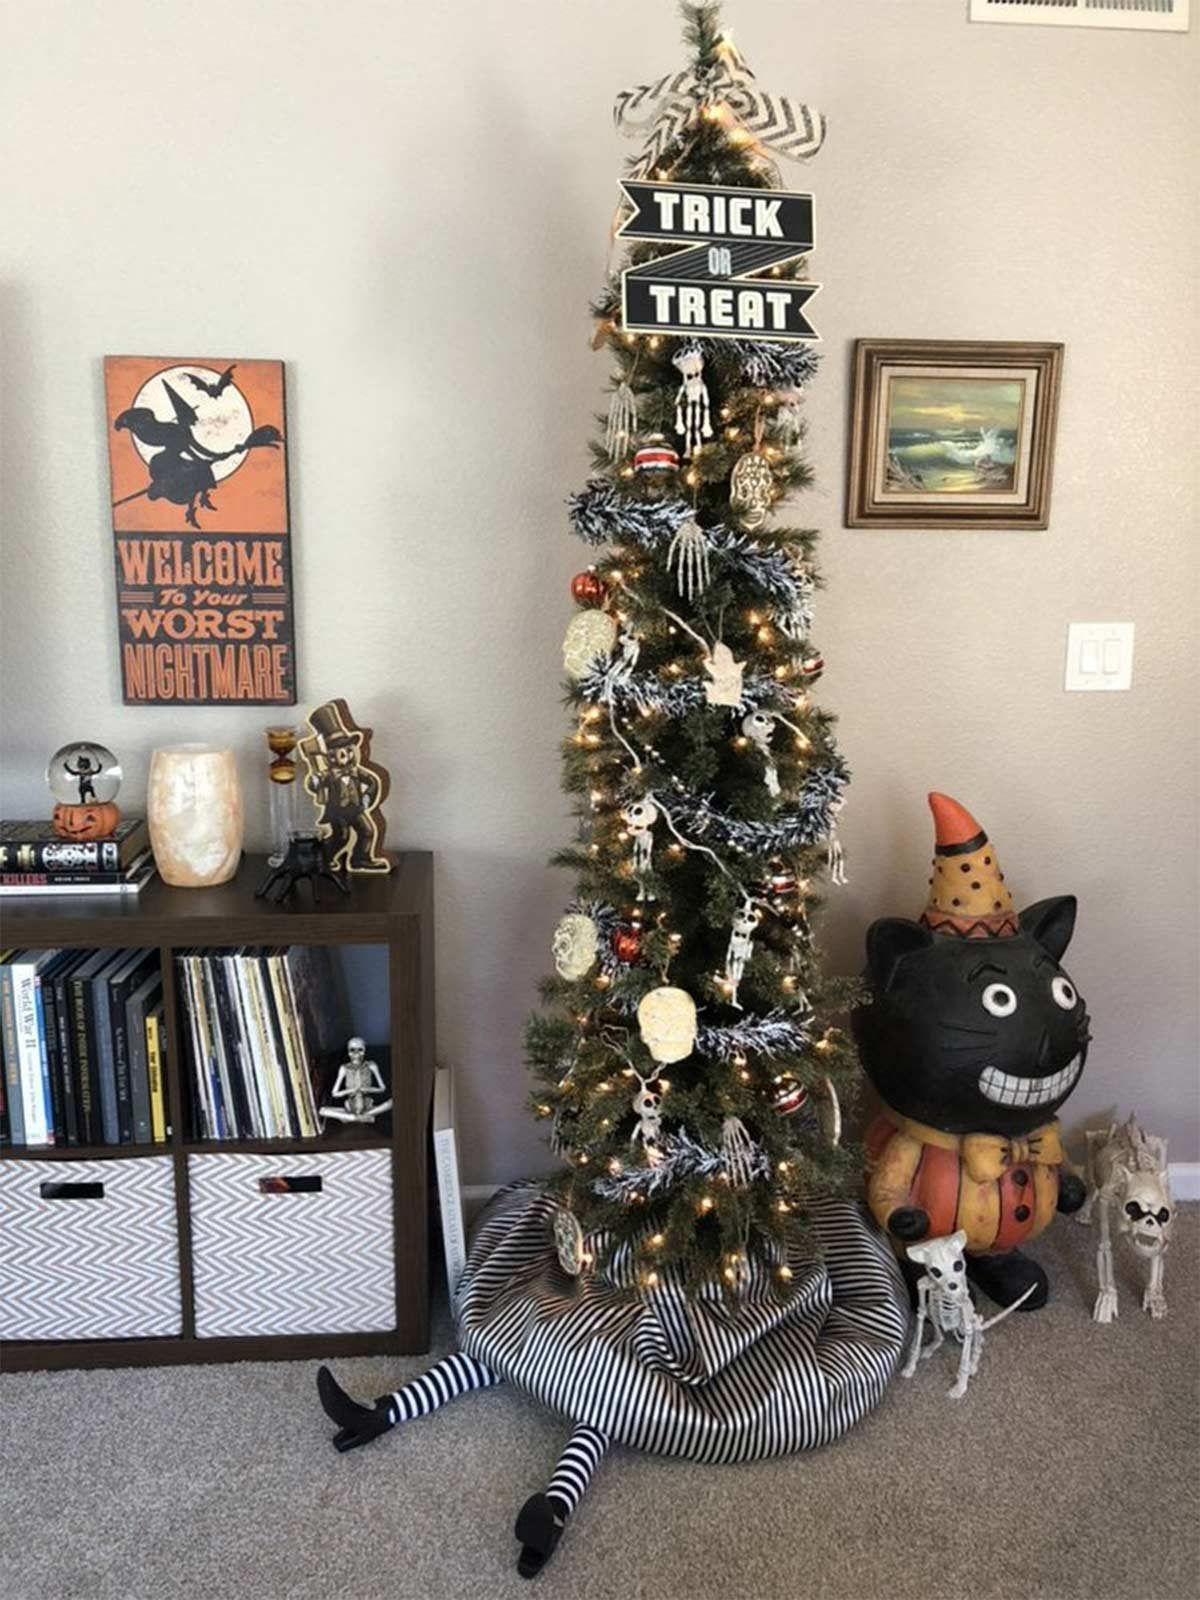 Halloween Christmas Tree.The Latest Holiday Trend Halloween Christmas Trees Taste